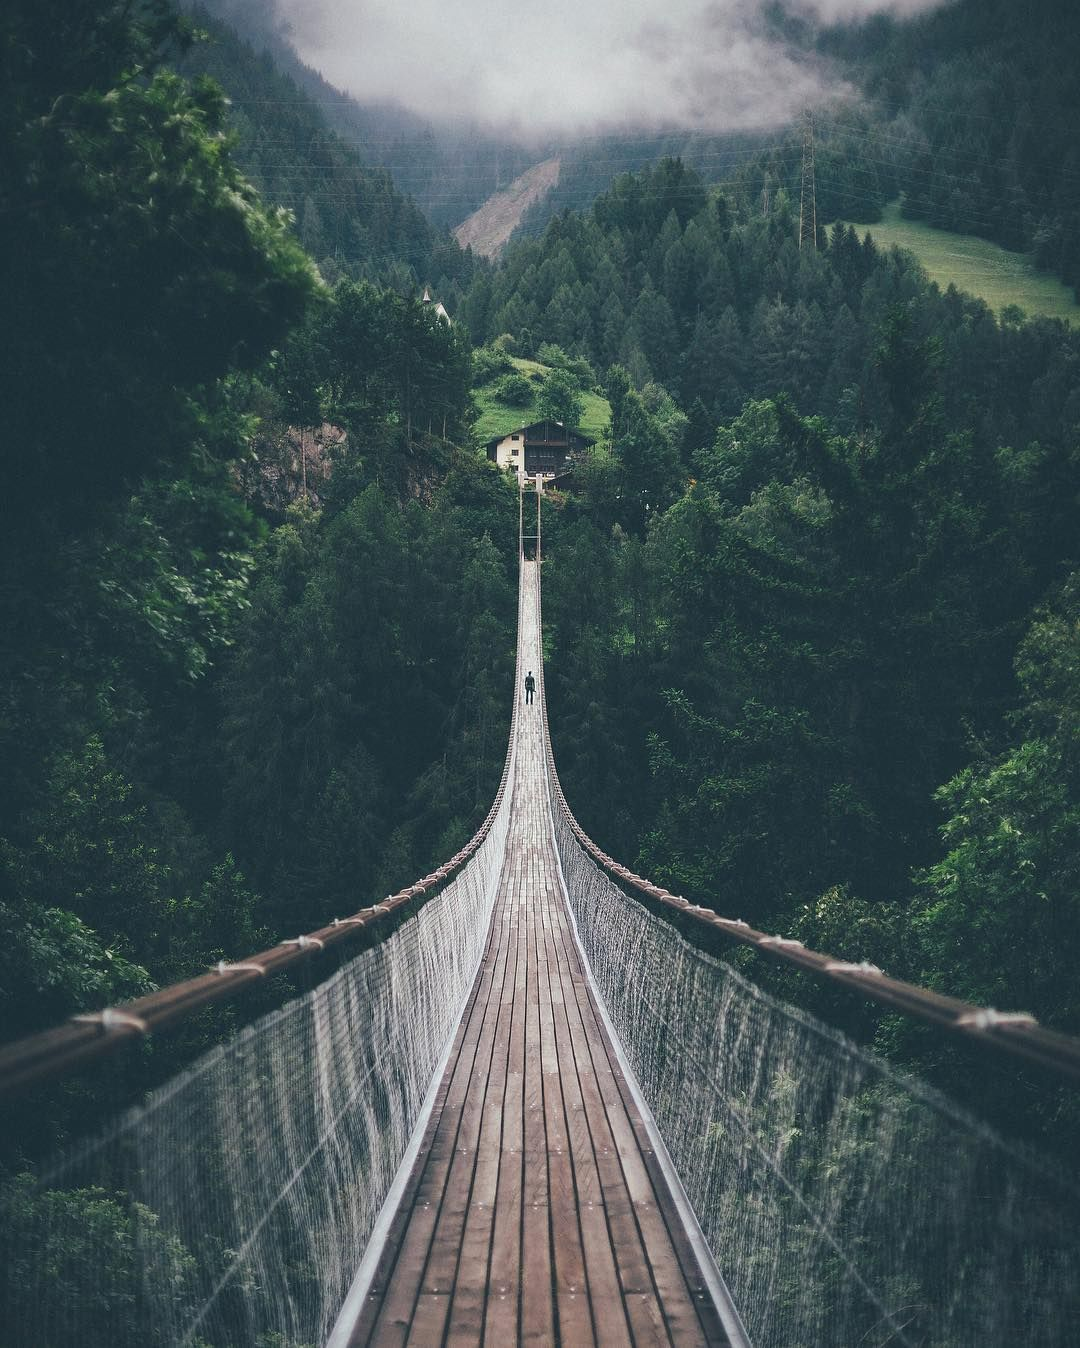 Johannes Hulsch is a talented 20 years old self-taght photographer and student based in Leipzig, Germany. Johannes shoots a lot of landscape, travel and nature photography. He is currently studies …